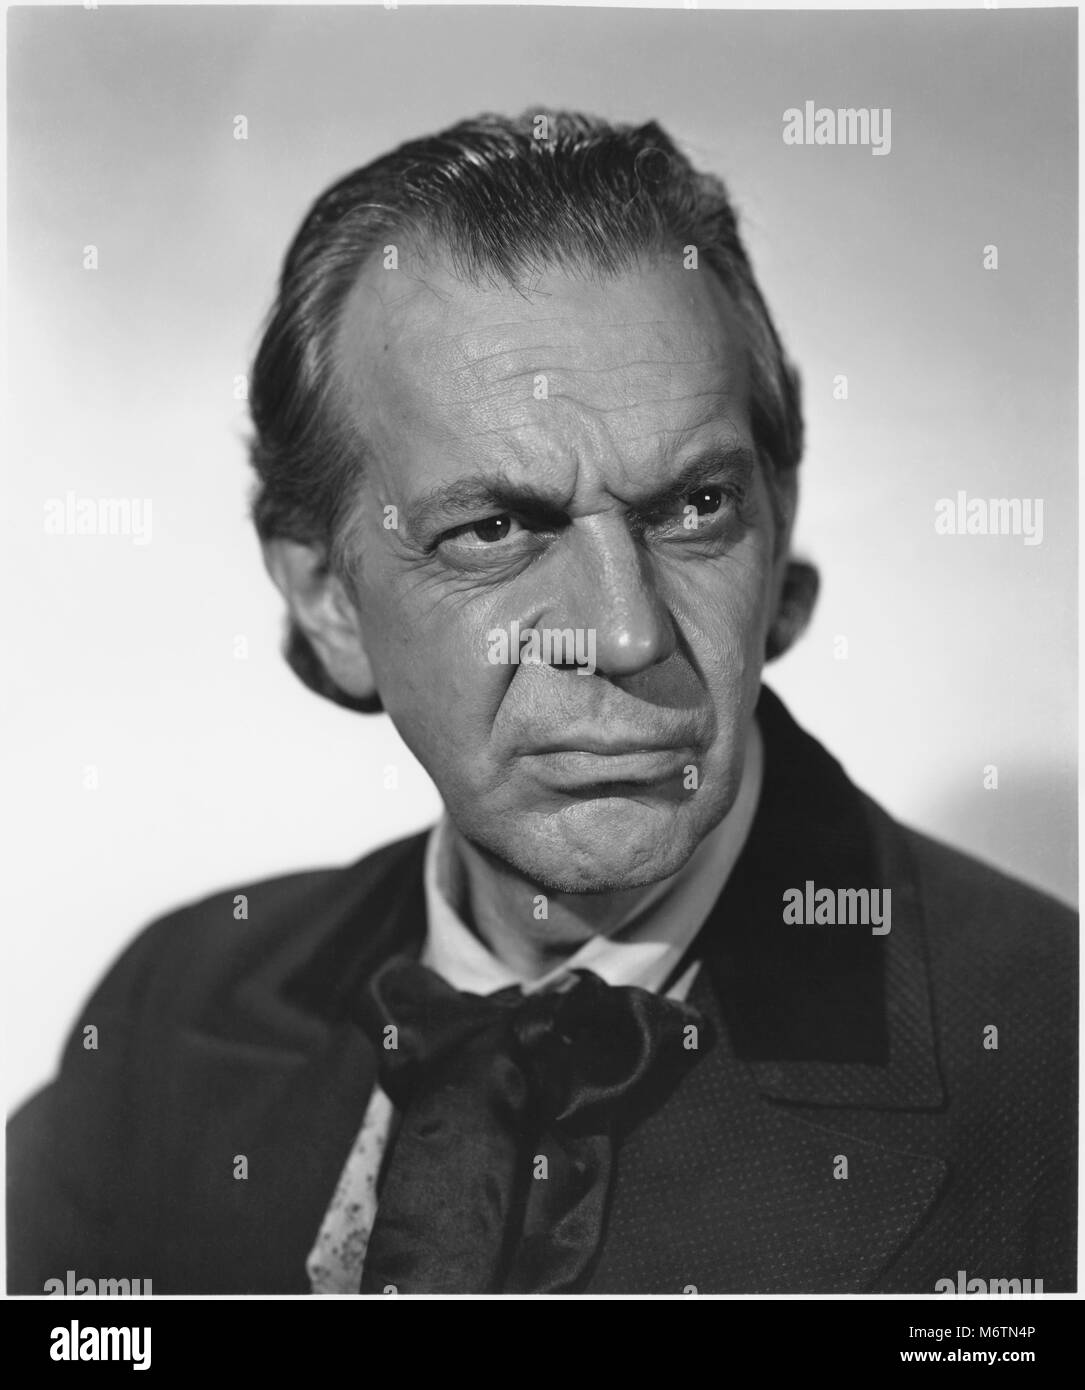 Raymond Massey, Publicity Portrait for the Film, 'Prince of Players', 20th Century Fox, 1955 - Stock Image